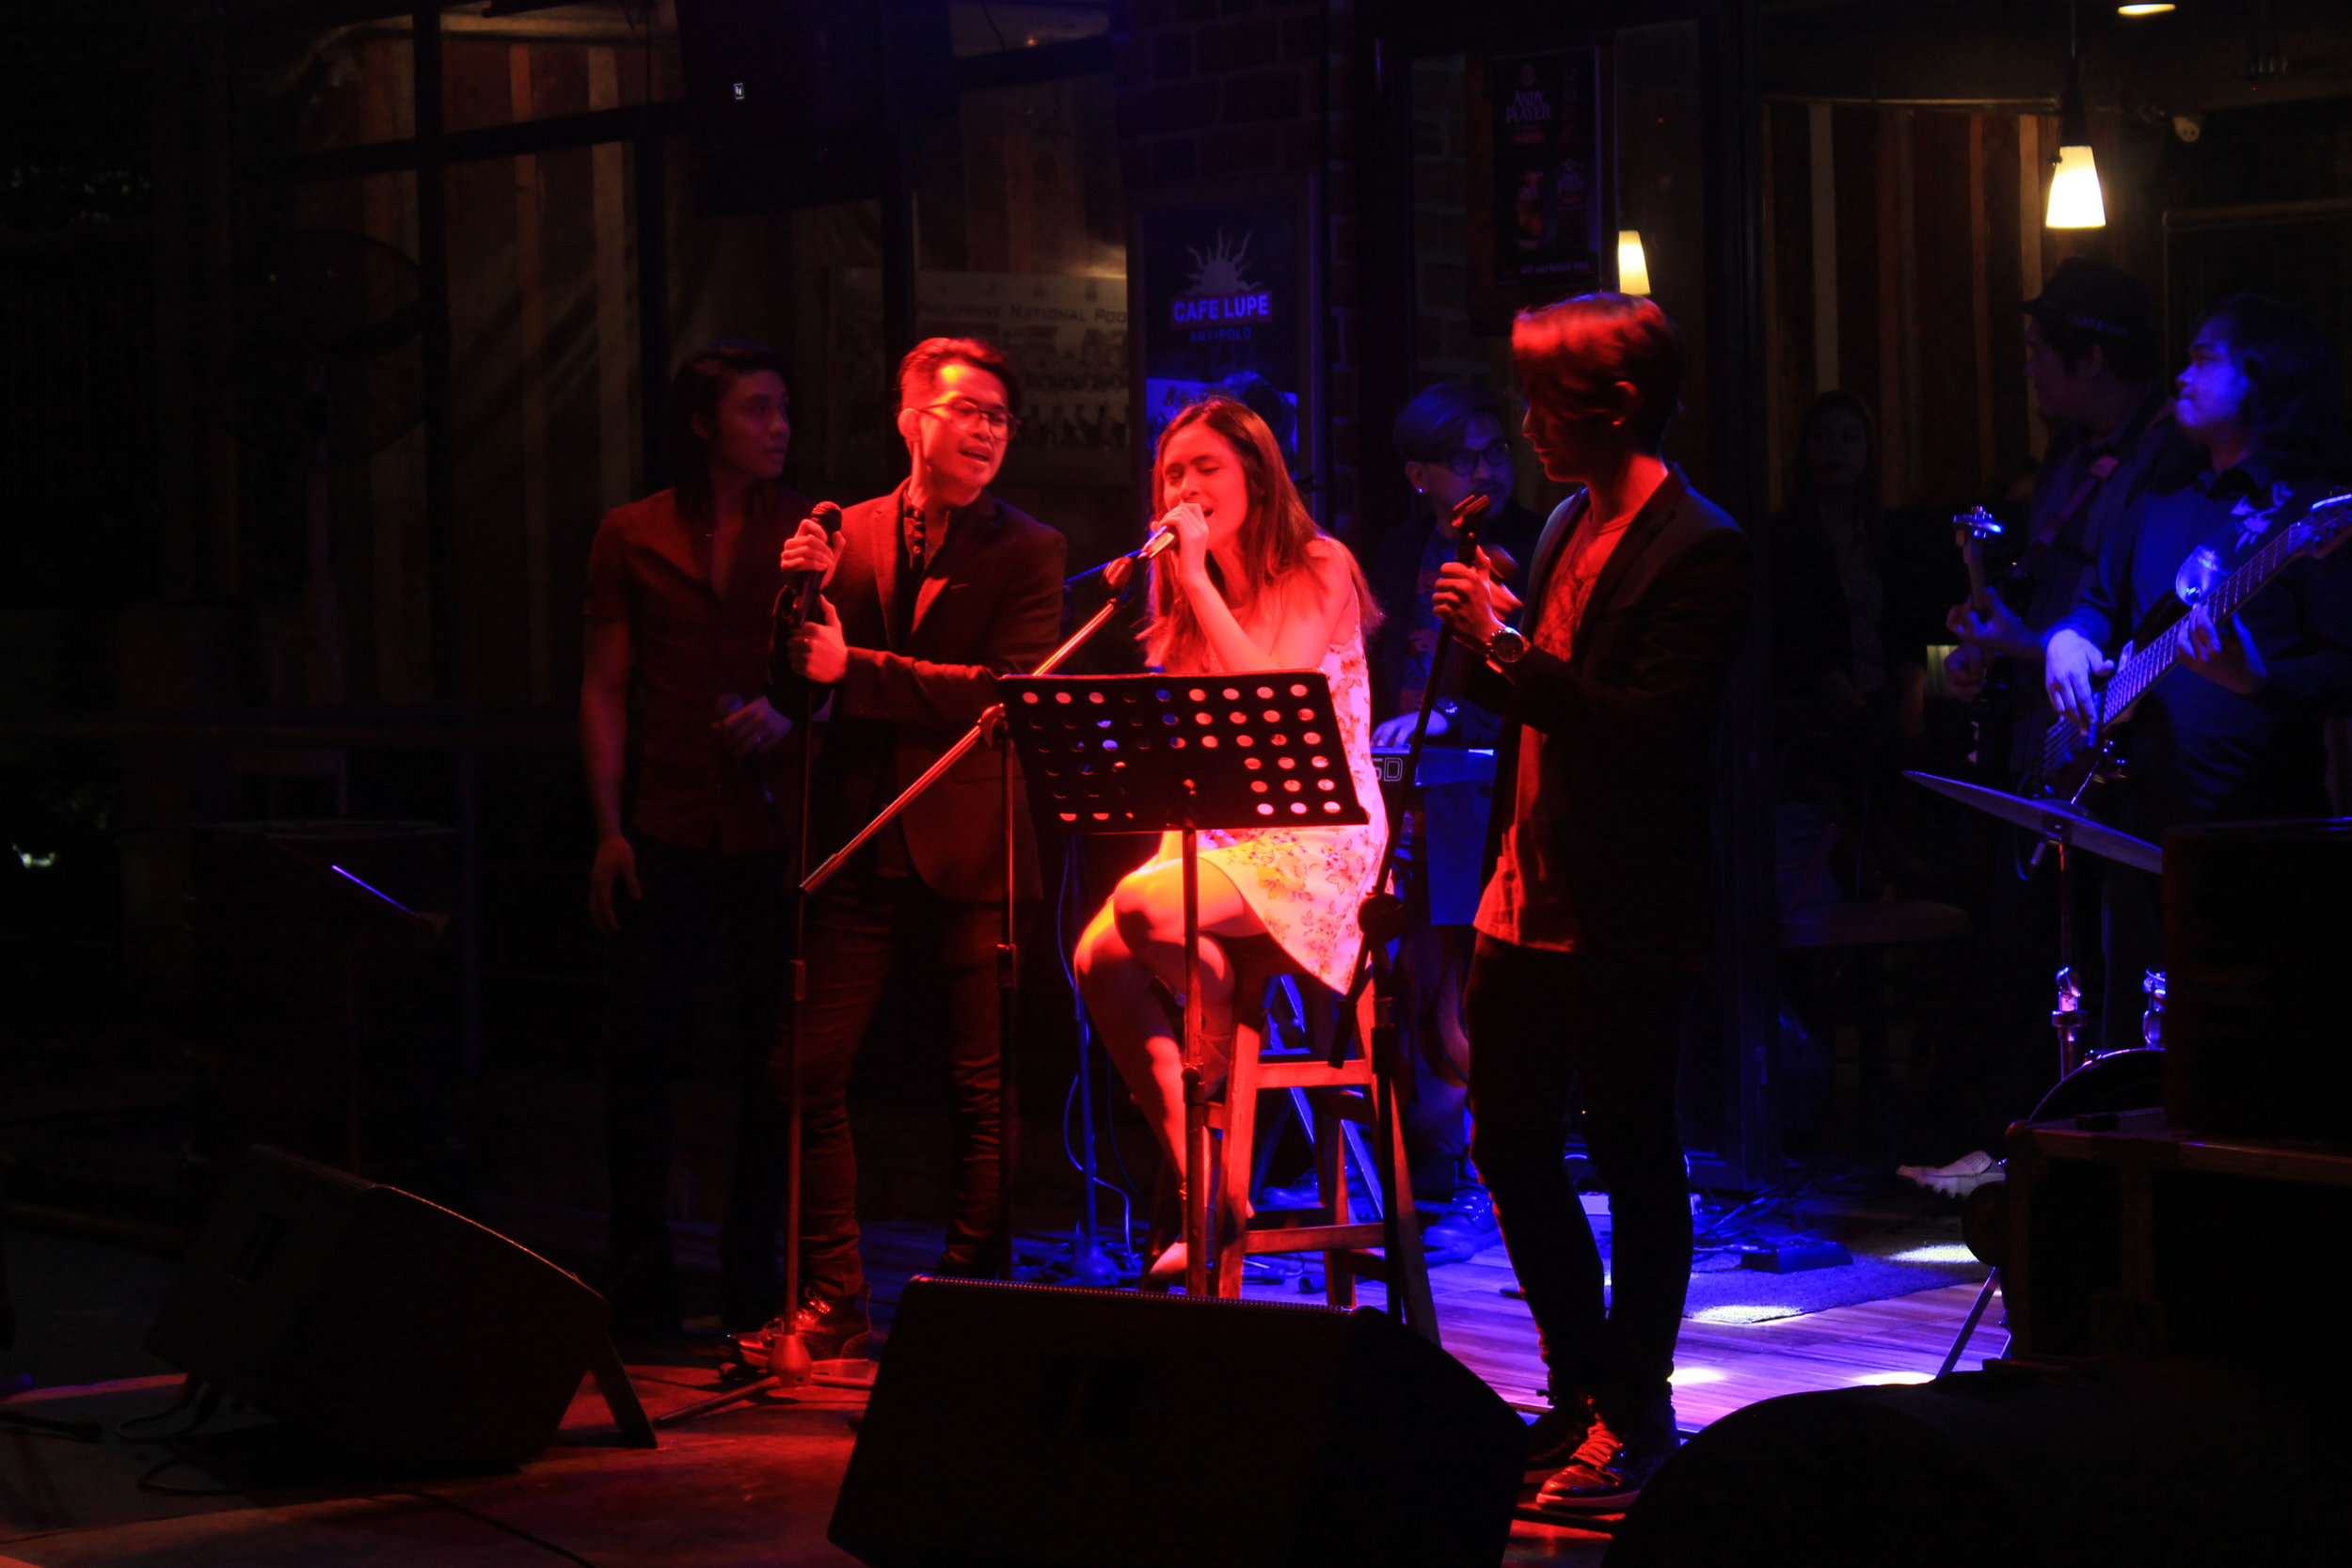 live-band-1-cafe-lupe-antipolo